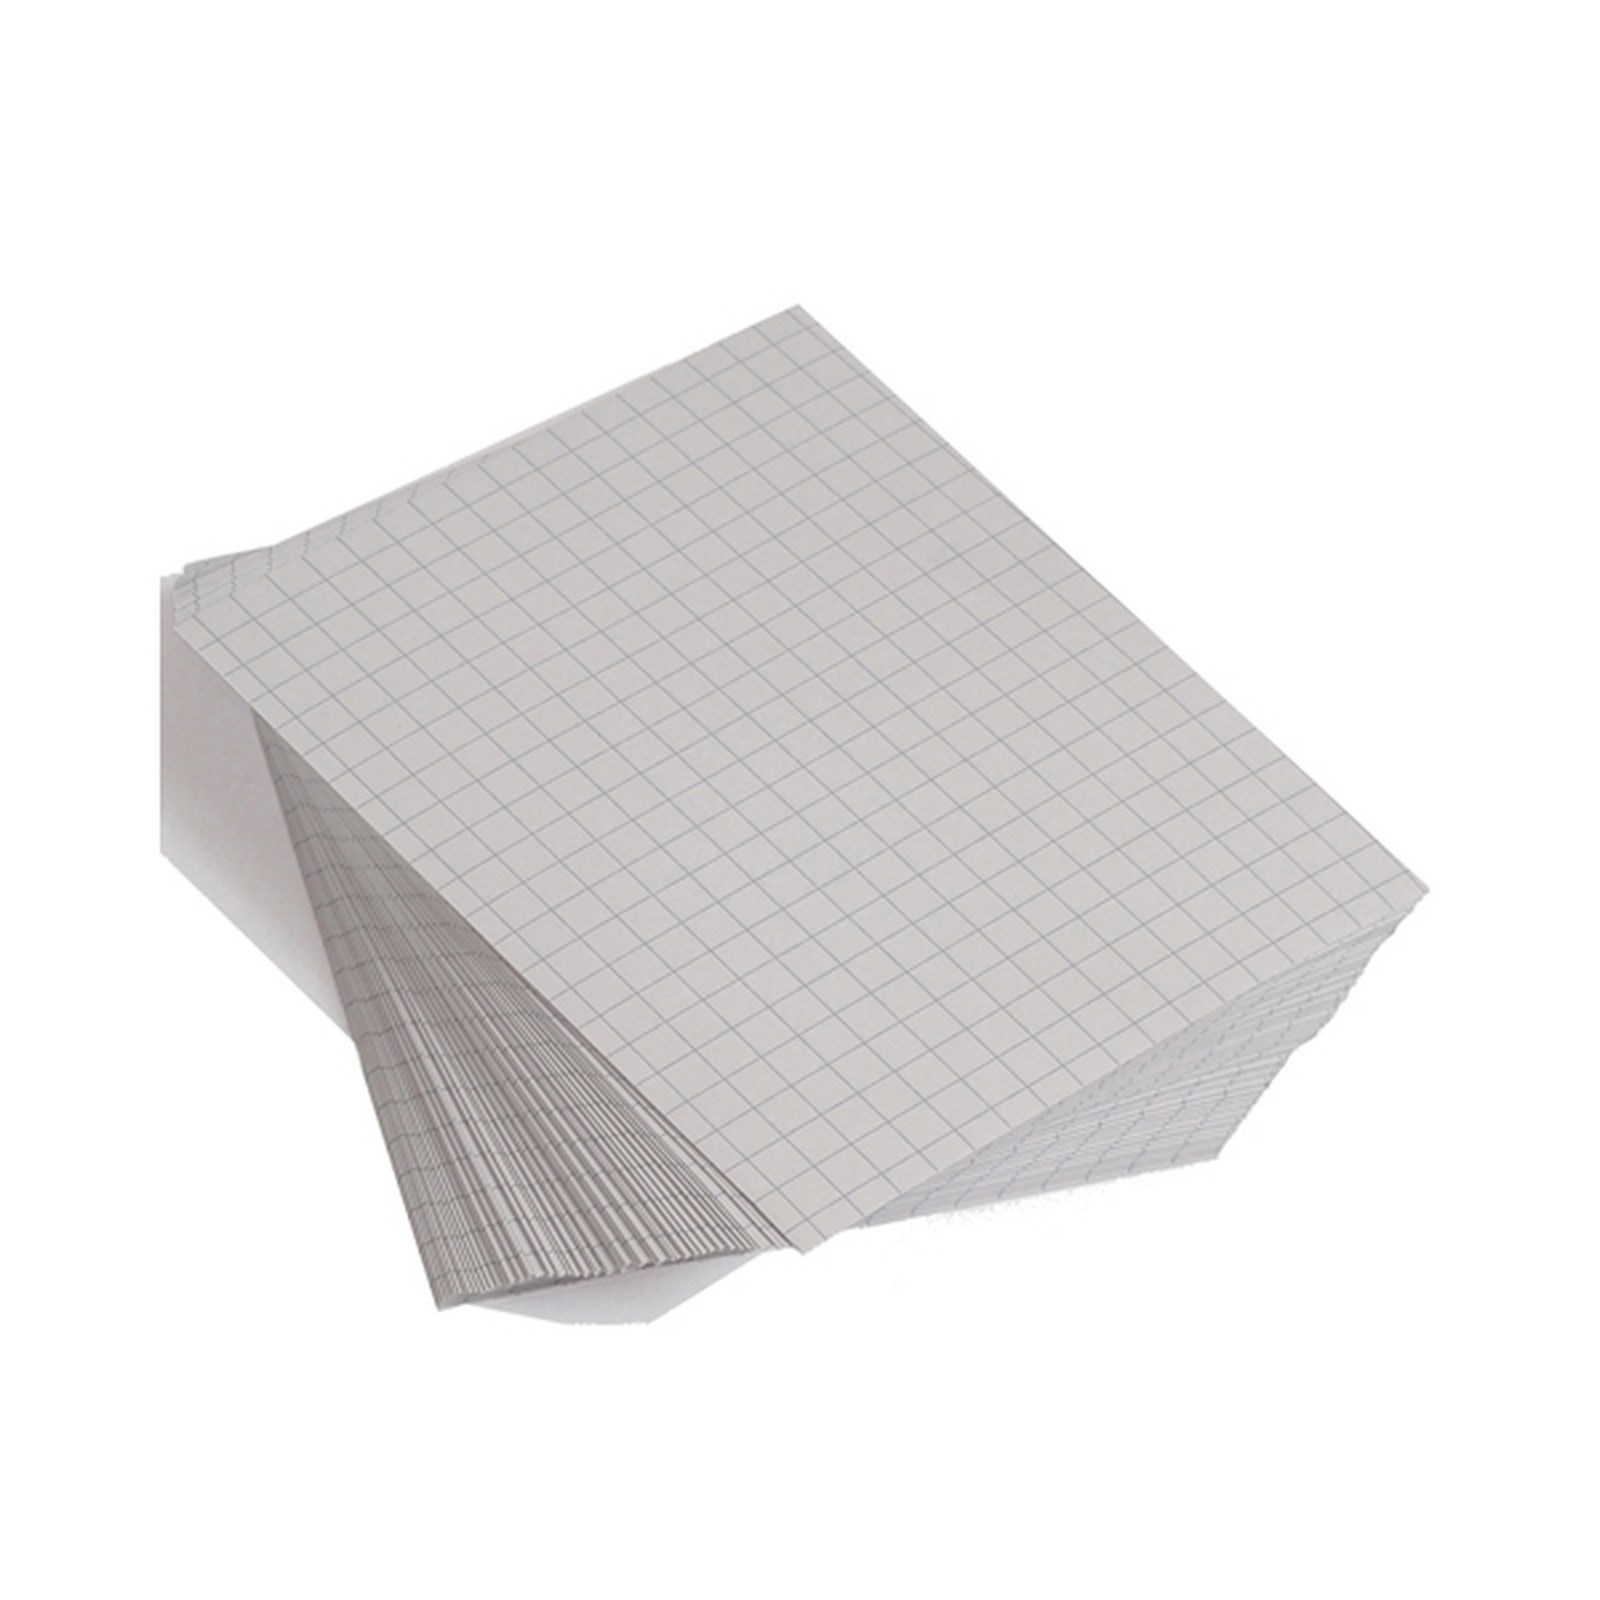 9x7 Exercise Paper, Unpunched, 10mm Squared